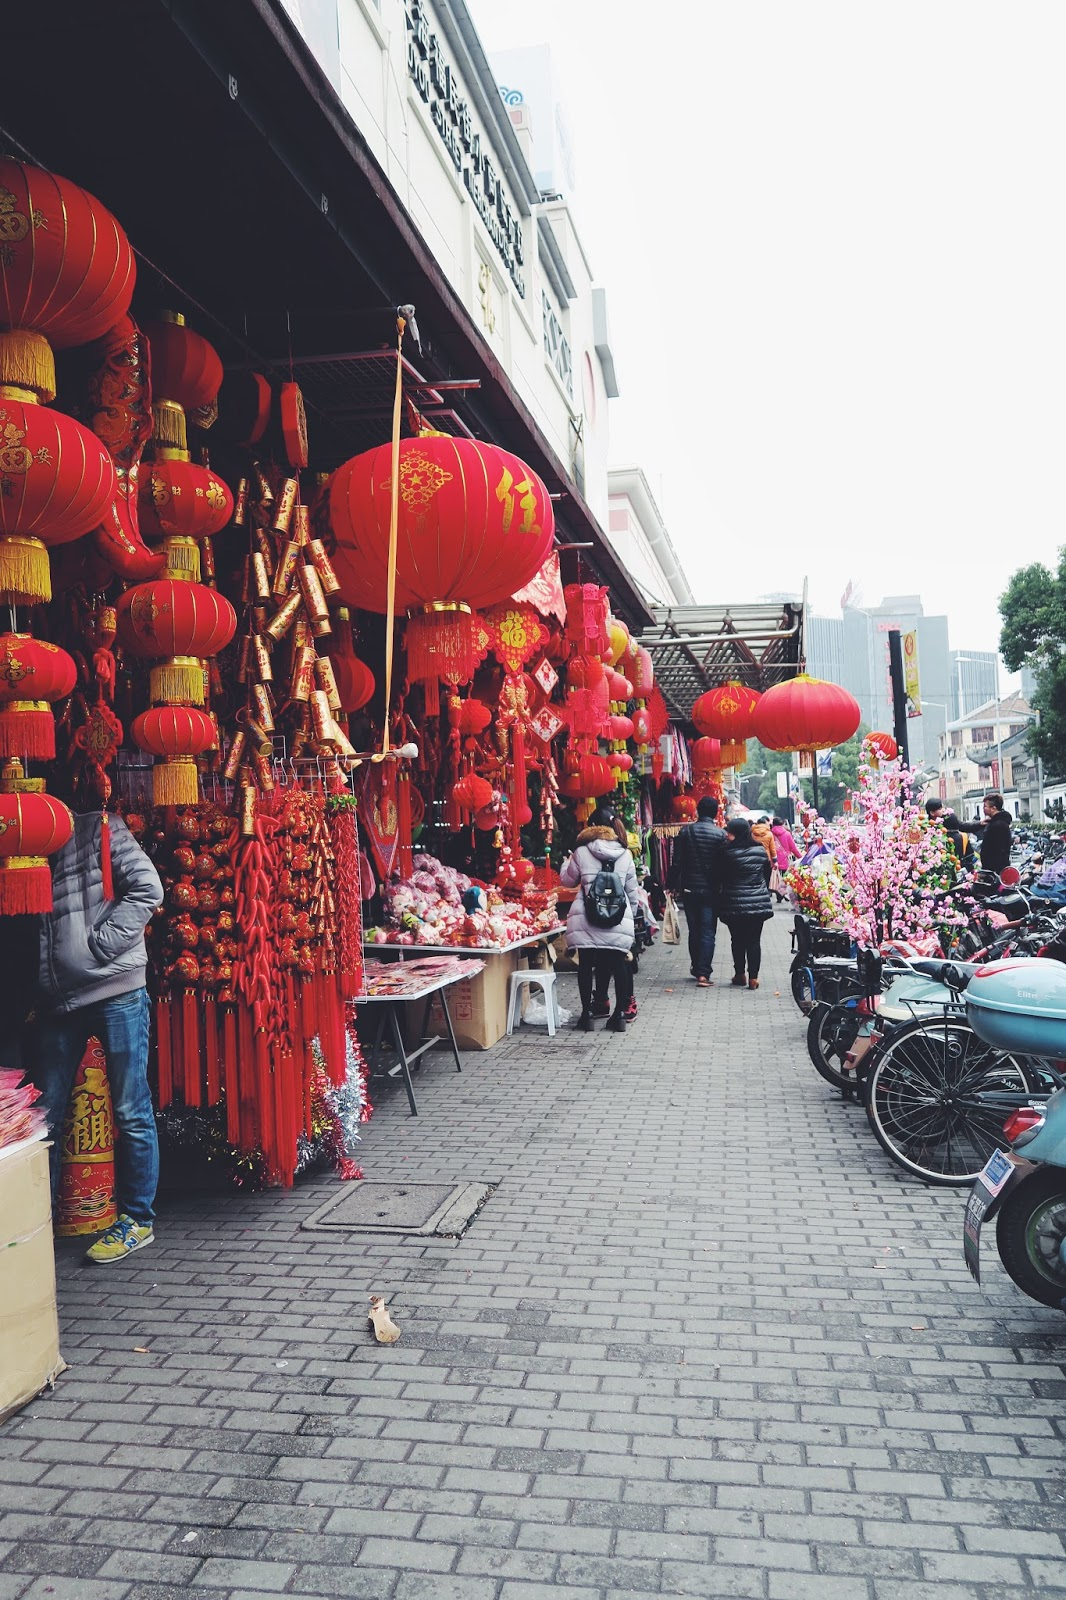 9 Things You Need To Know Before Going To Shanghai, China